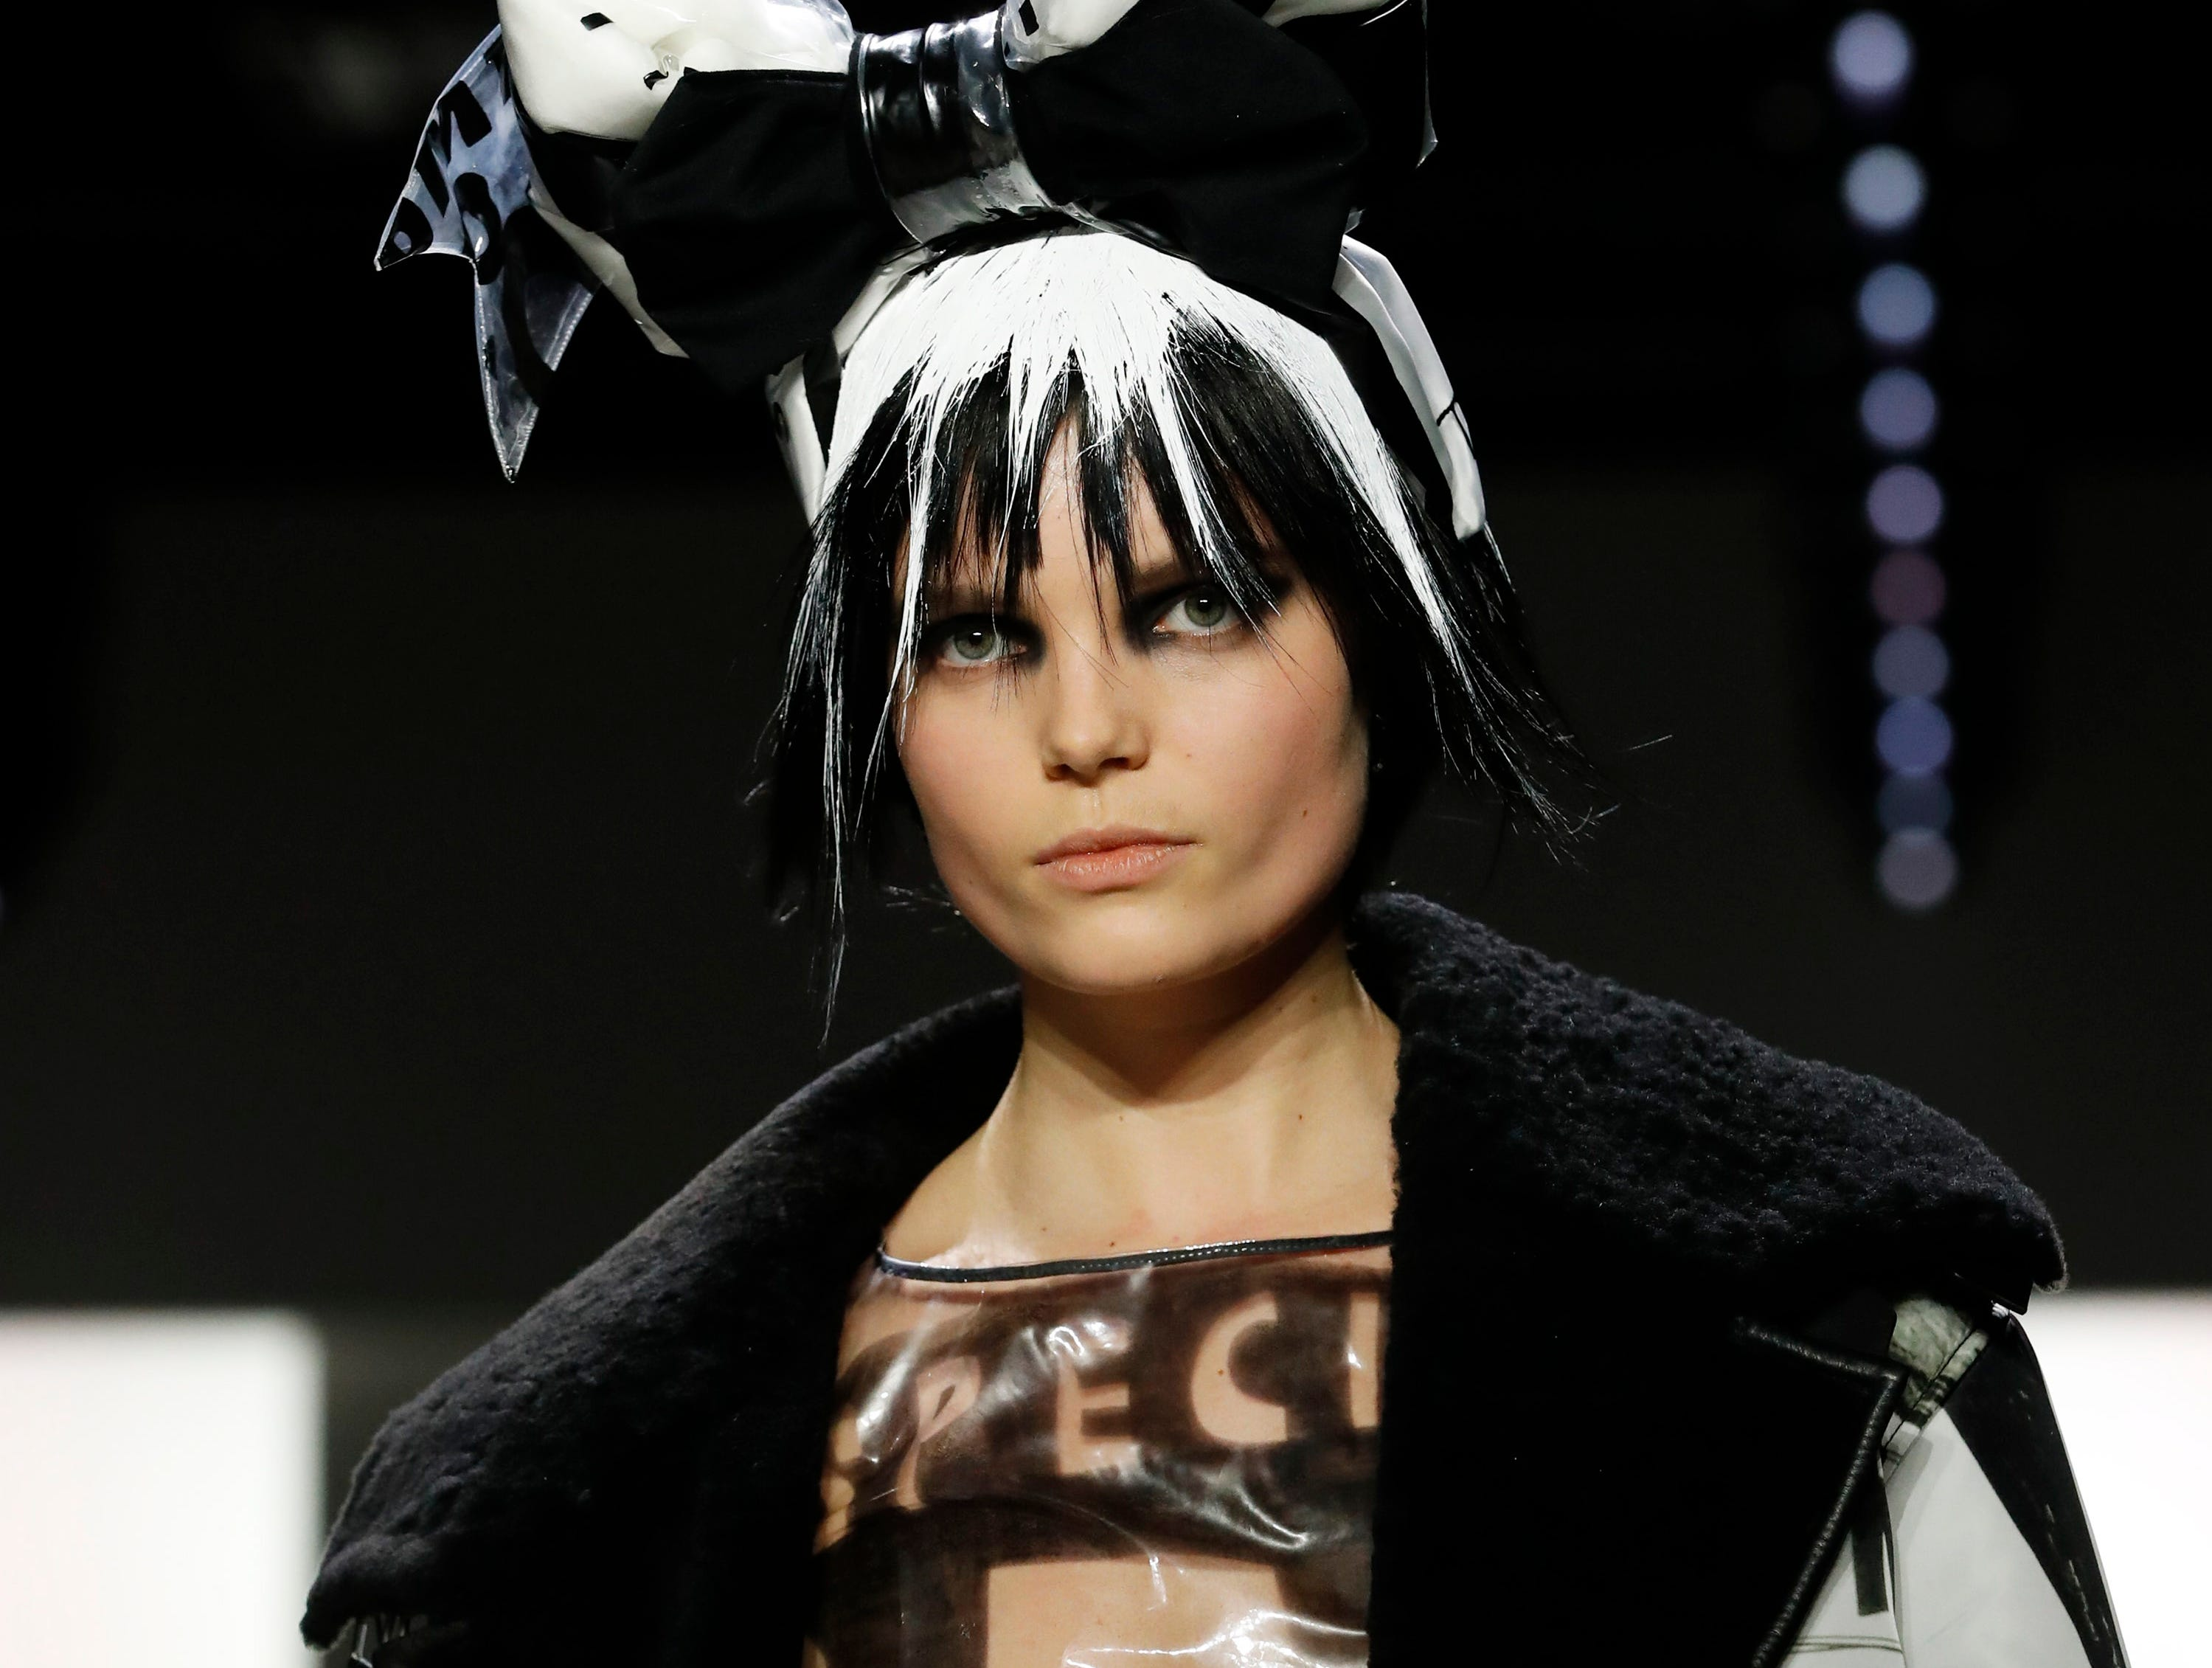 epa07354235 A model walks down the runway to present a creation by Jeremy Scott during New York Fashion Week in New York, New York, USA, 08 February 2019. New York Fashion Week for designer's autumn and winter lines is being held from 06 to 13 February 2019.  EPA-EFE/JASON SZENES ORG XMIT: JSX16